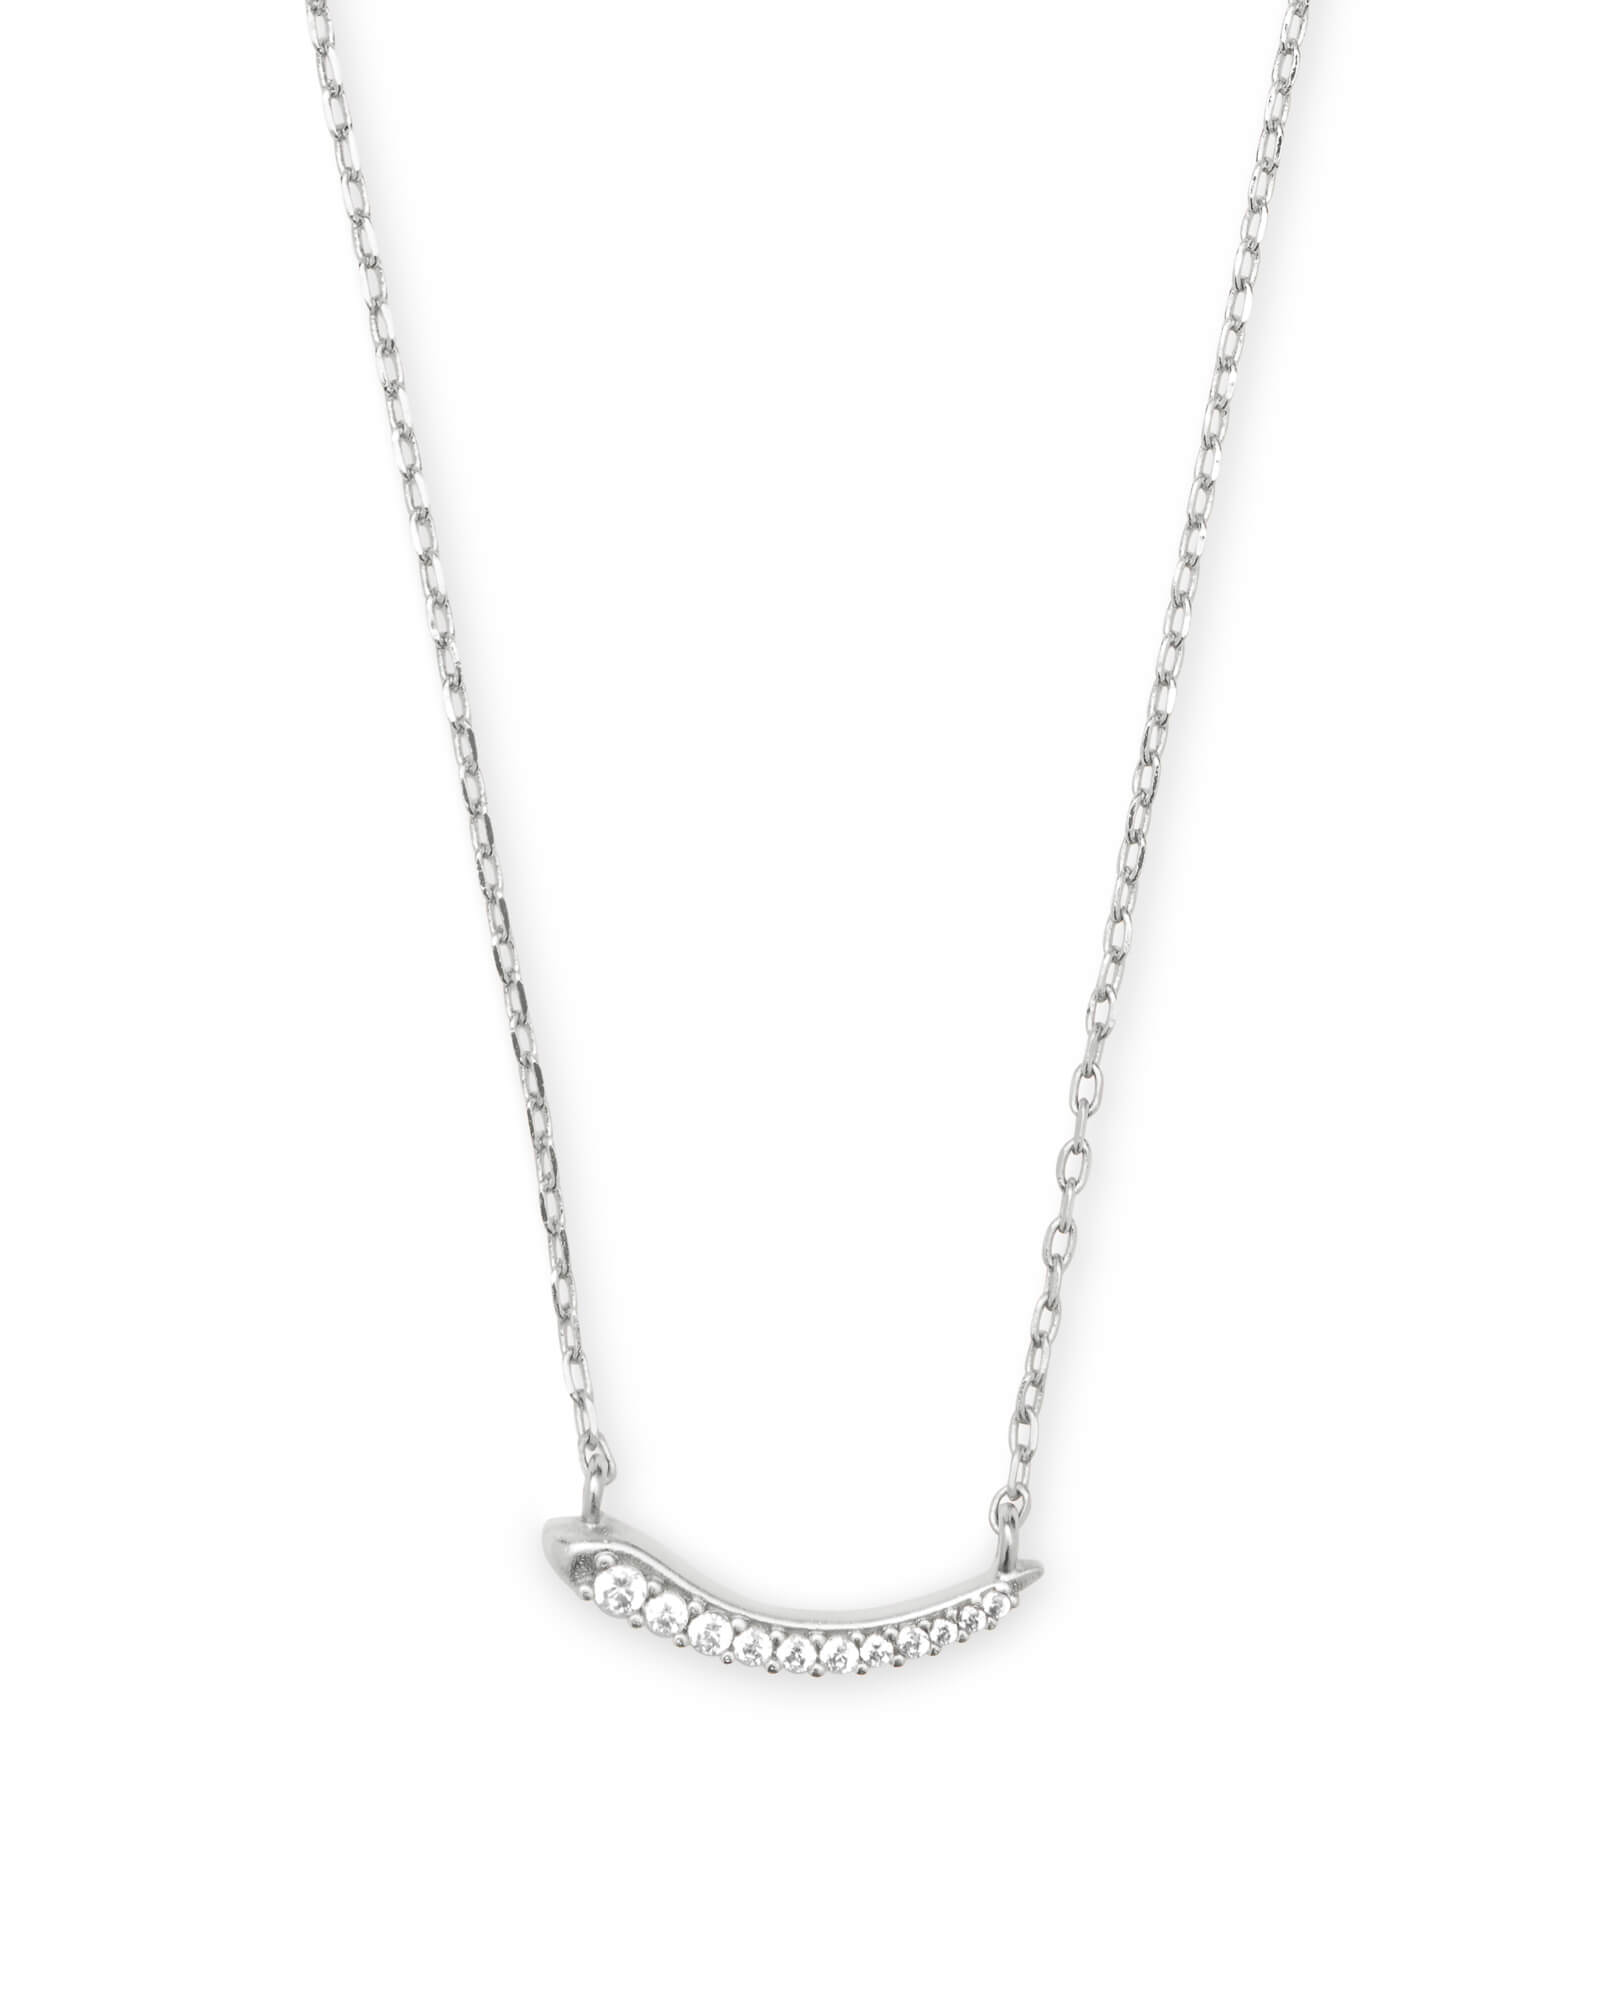 Whitlee Pendant Necklace in Silver